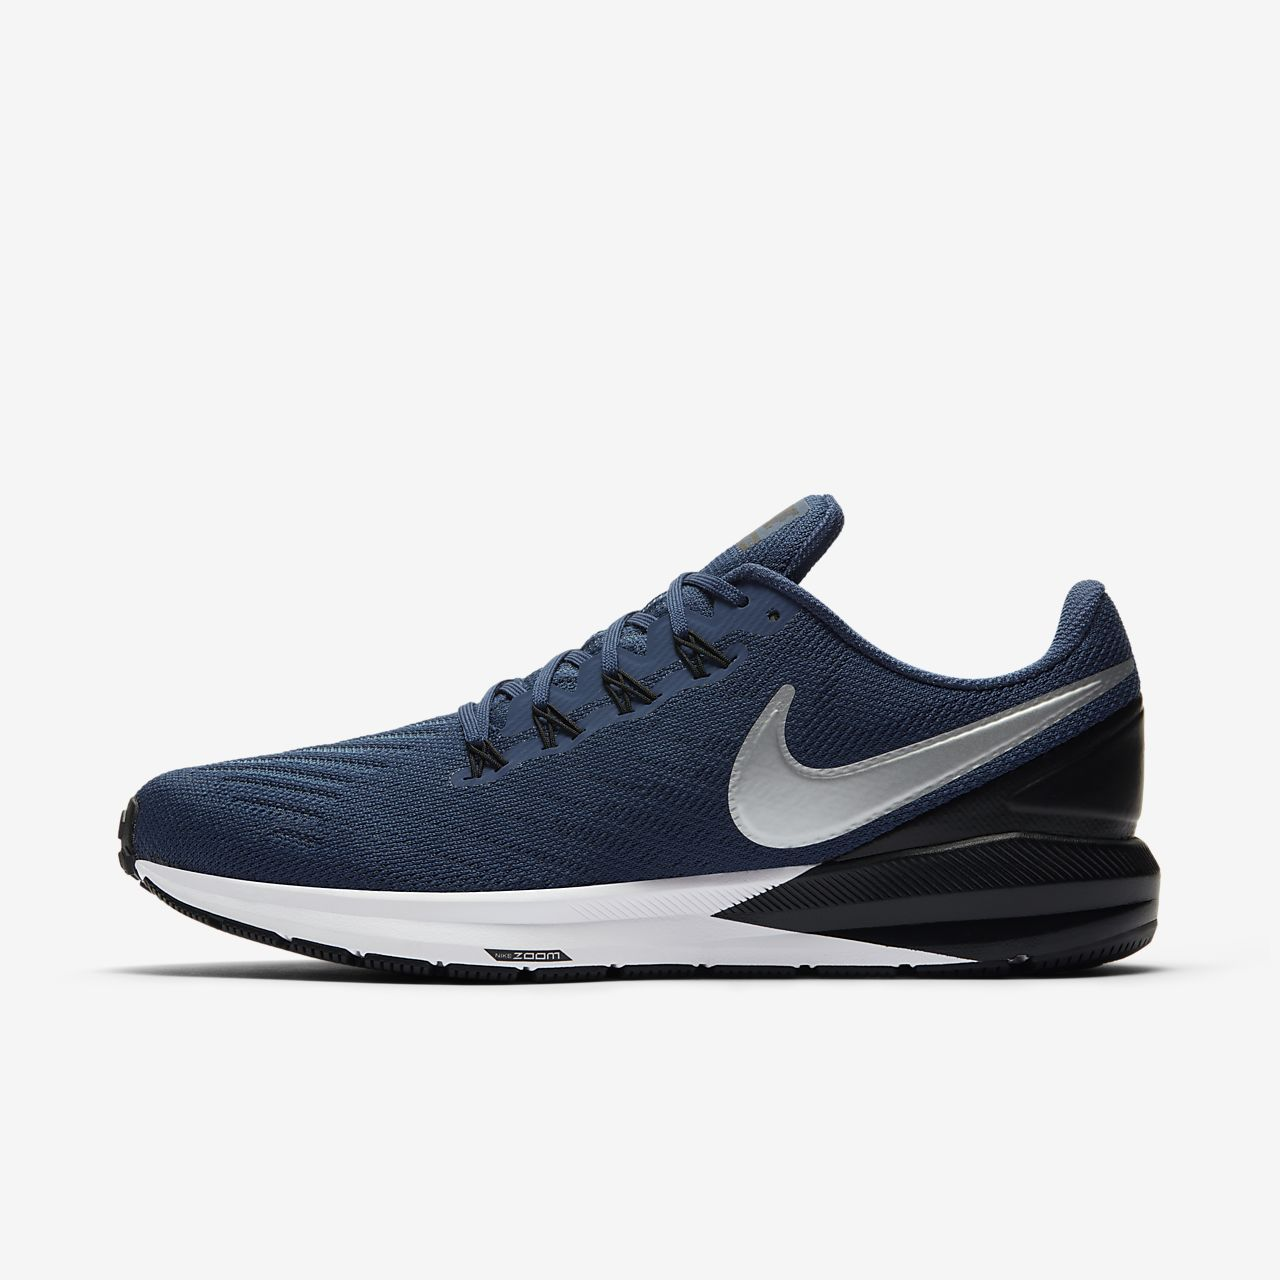 hot sale online 3f2ee c8b28 Nike Air Zoom Structure 22 Men's Running Shoe